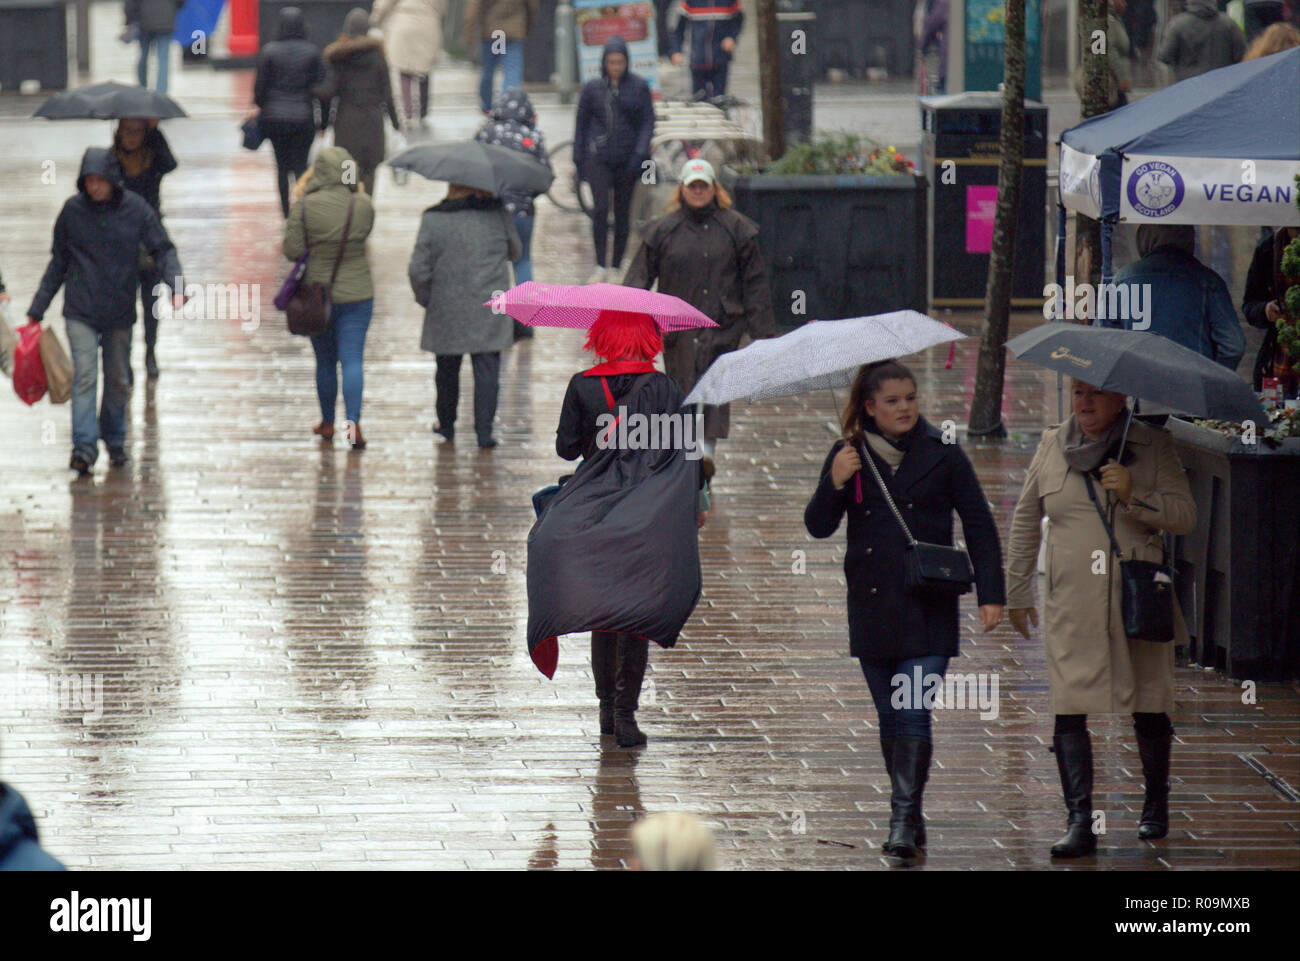 glasgow-scotland-uk-3rd-nov-2018-uk-weat